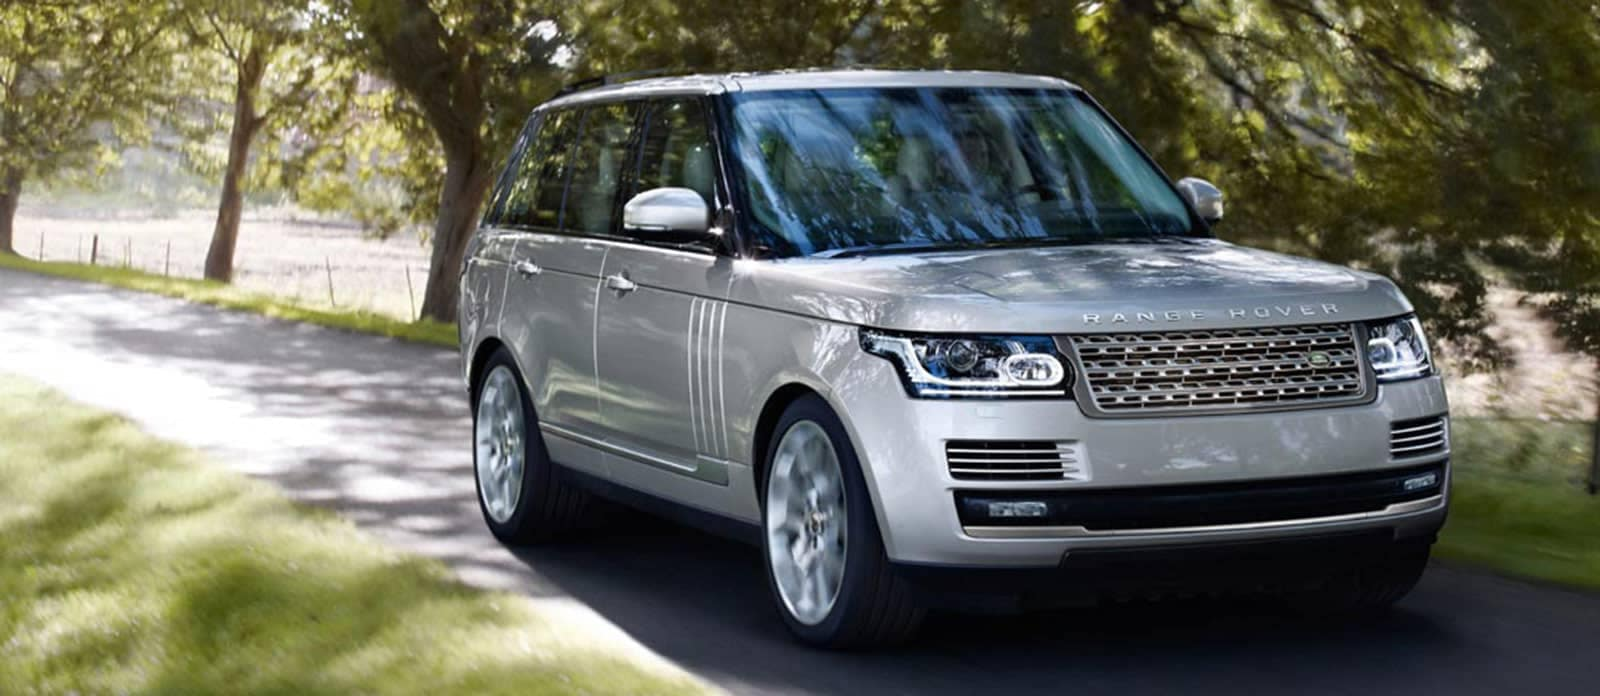 range rover lease deals 2017 lamoureph blog. Black Bedroom Furniture Sets. Home Design Ideas